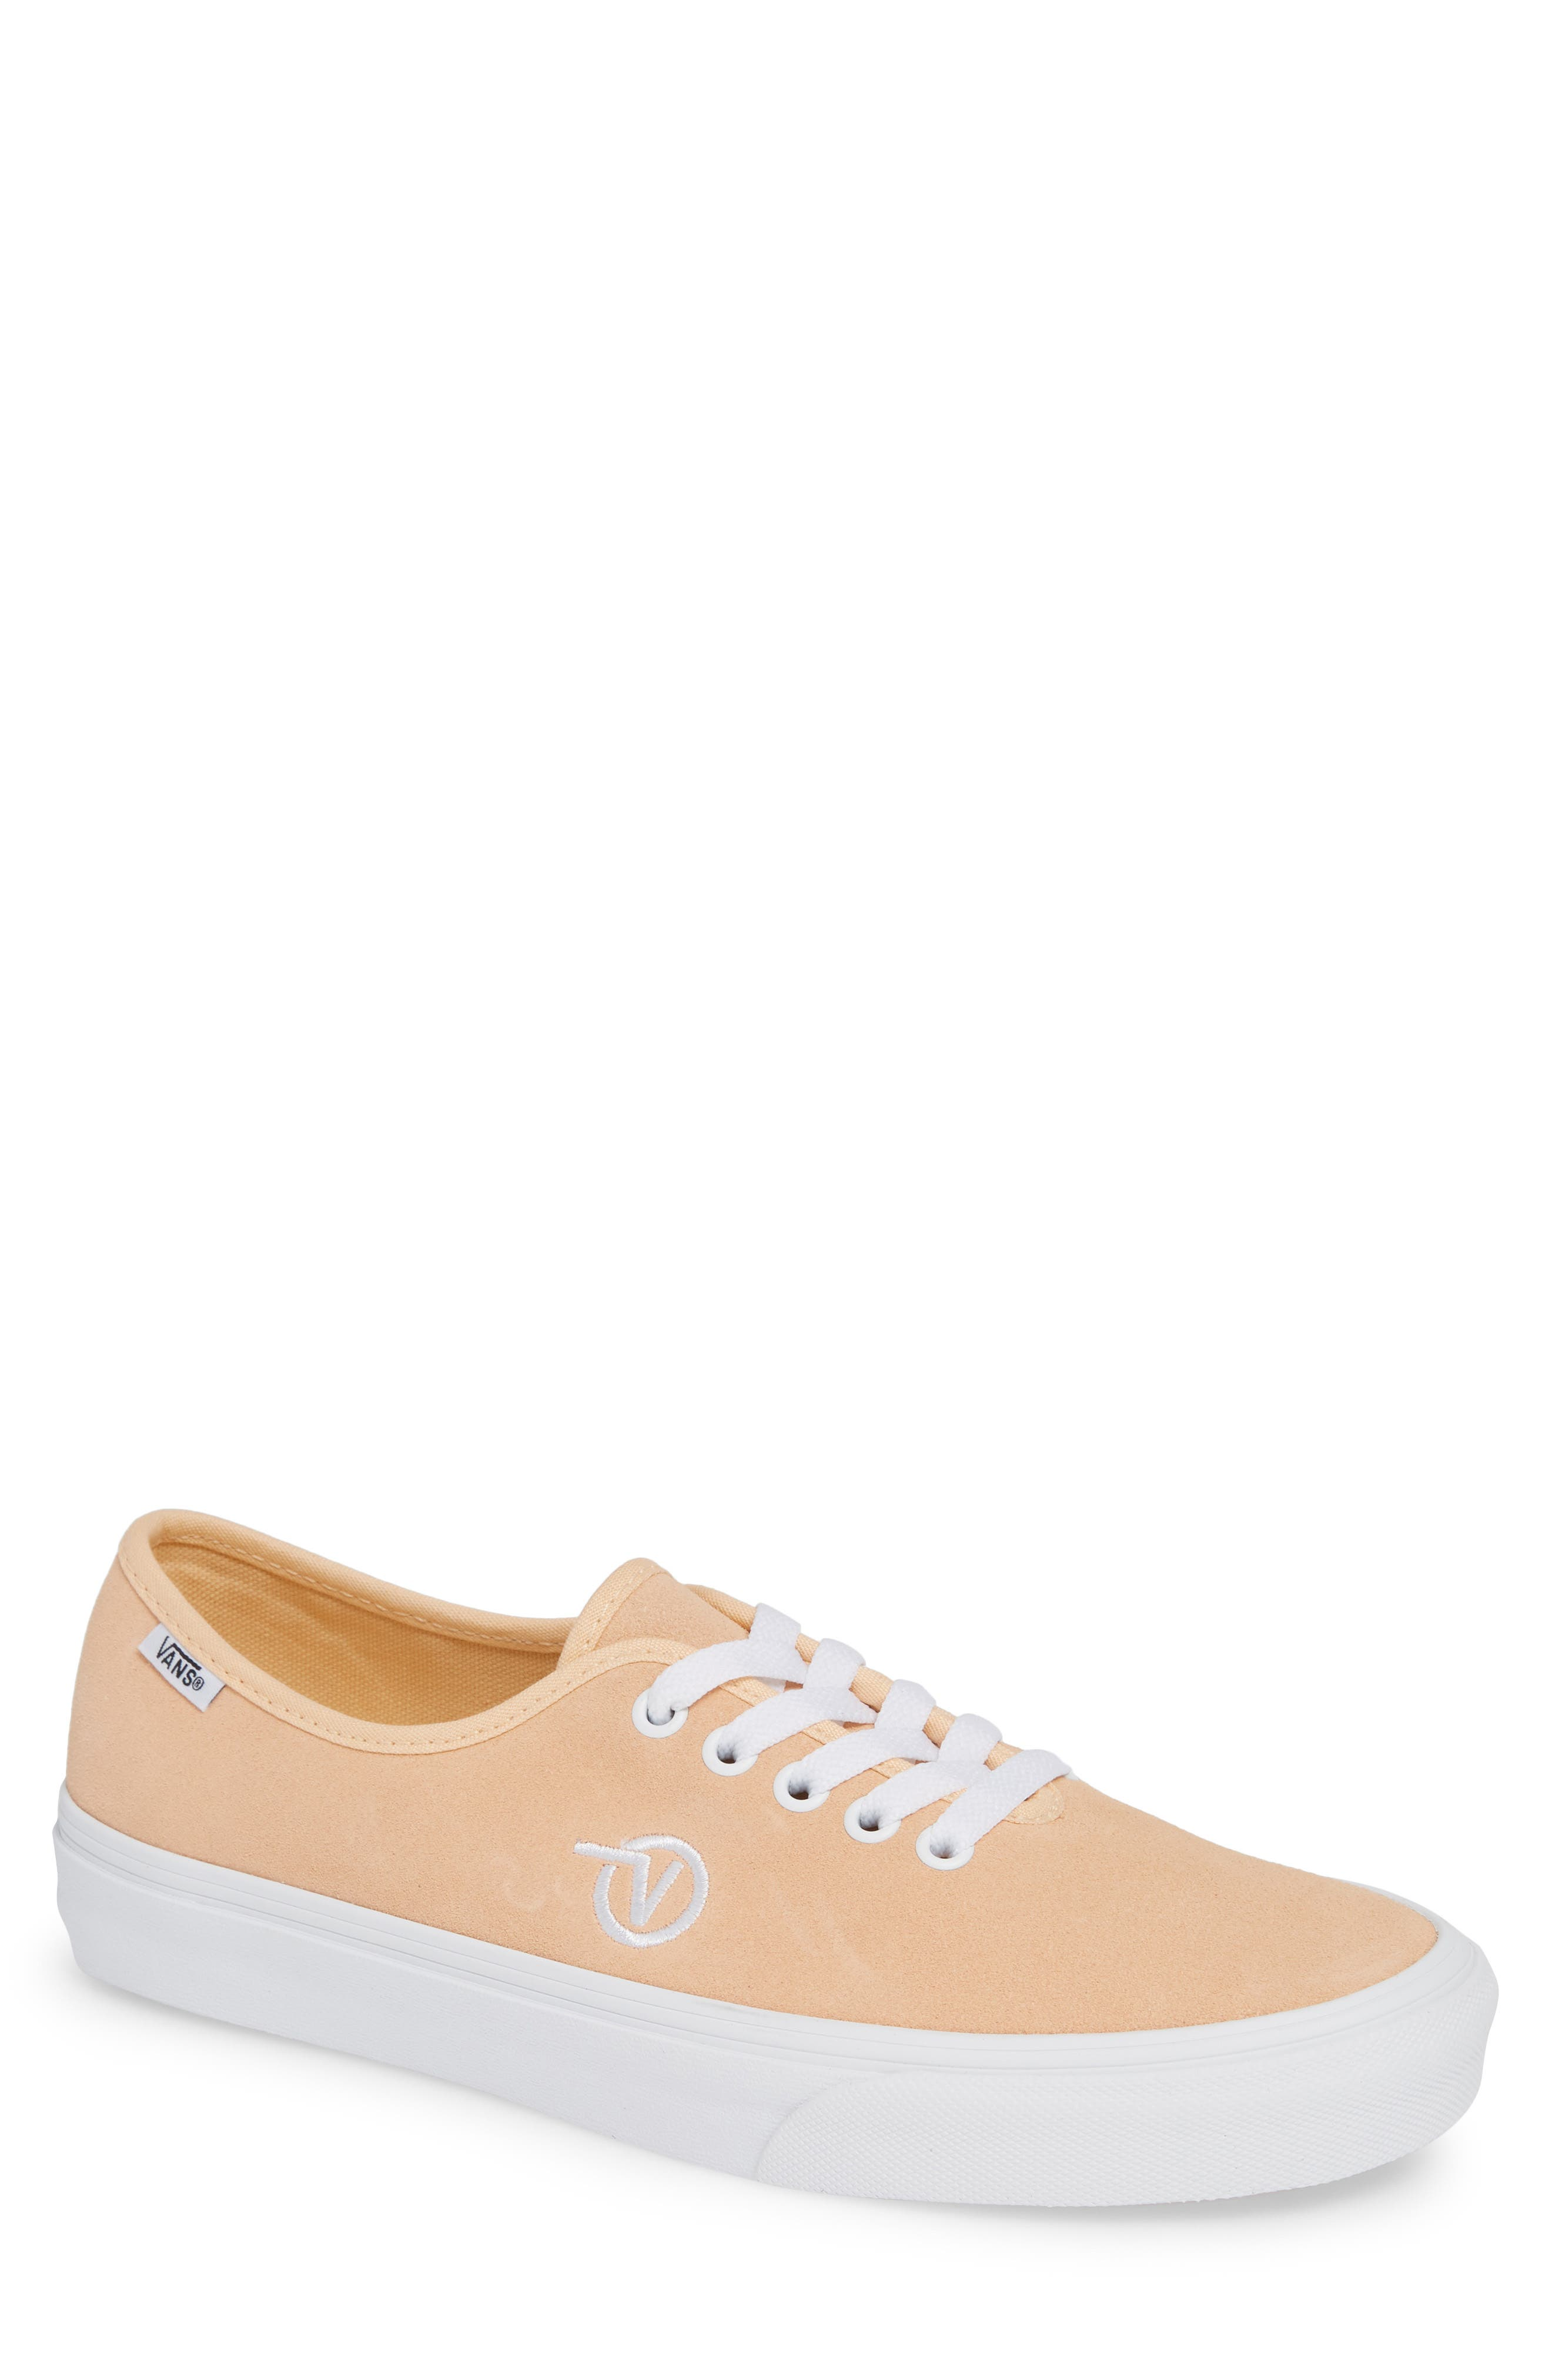 Authentic One-Piece Sneaker,                             Main thumbnail 1, color,                             BLEACHED APRICOT/ SUEDE